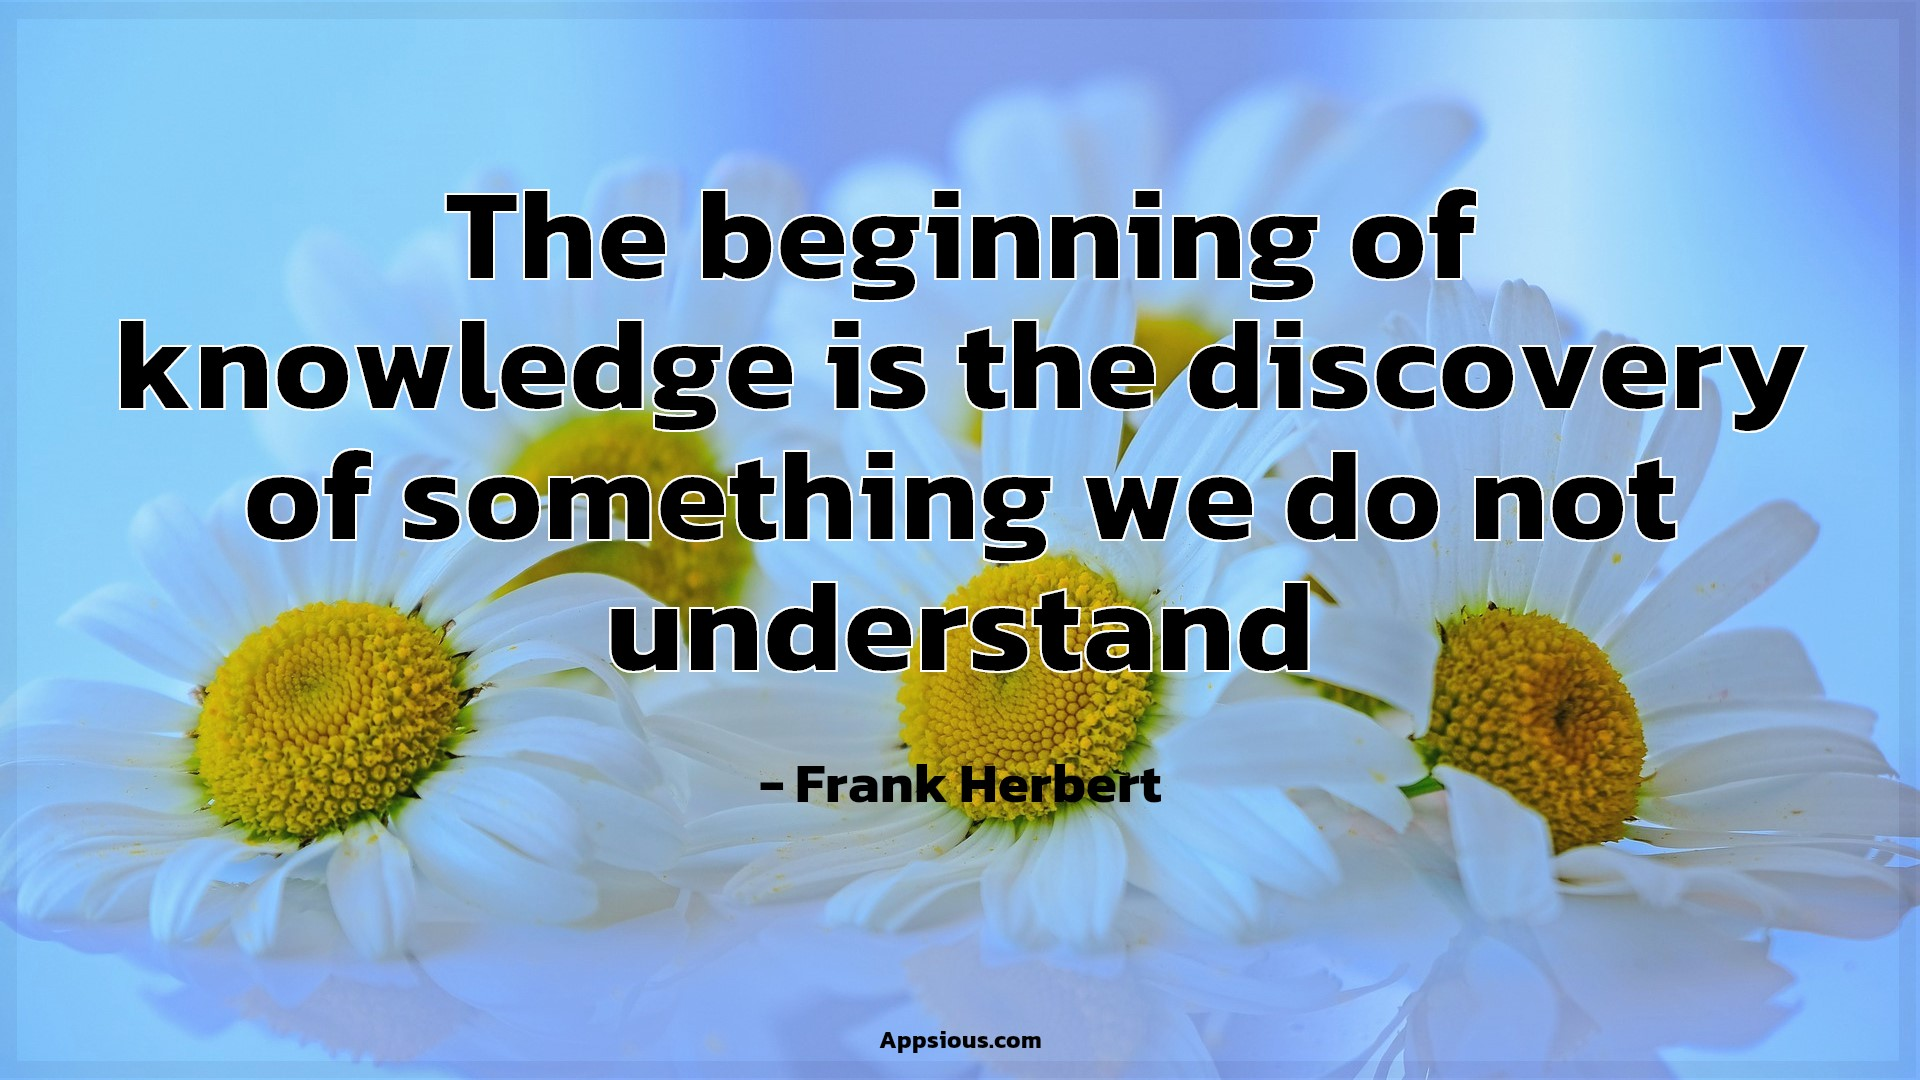 The beginning of knowledge is the discovery of something we do not understand